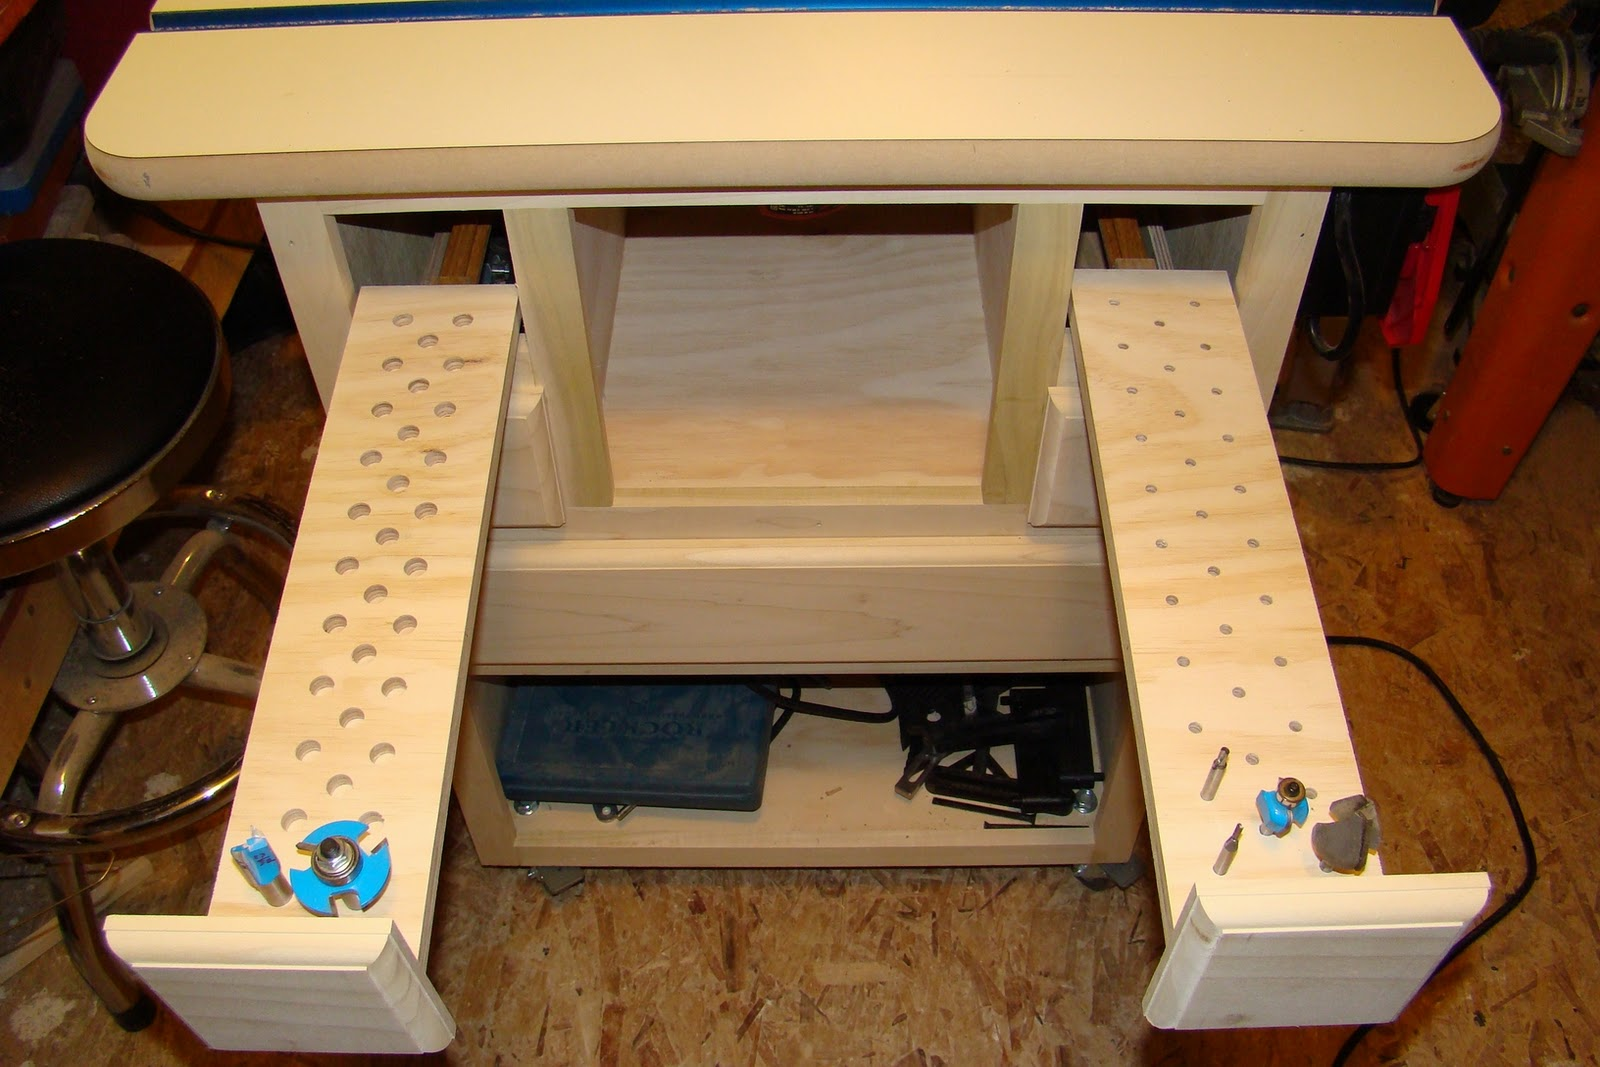 ... plans using router diy homemade gun safe plans download building deer